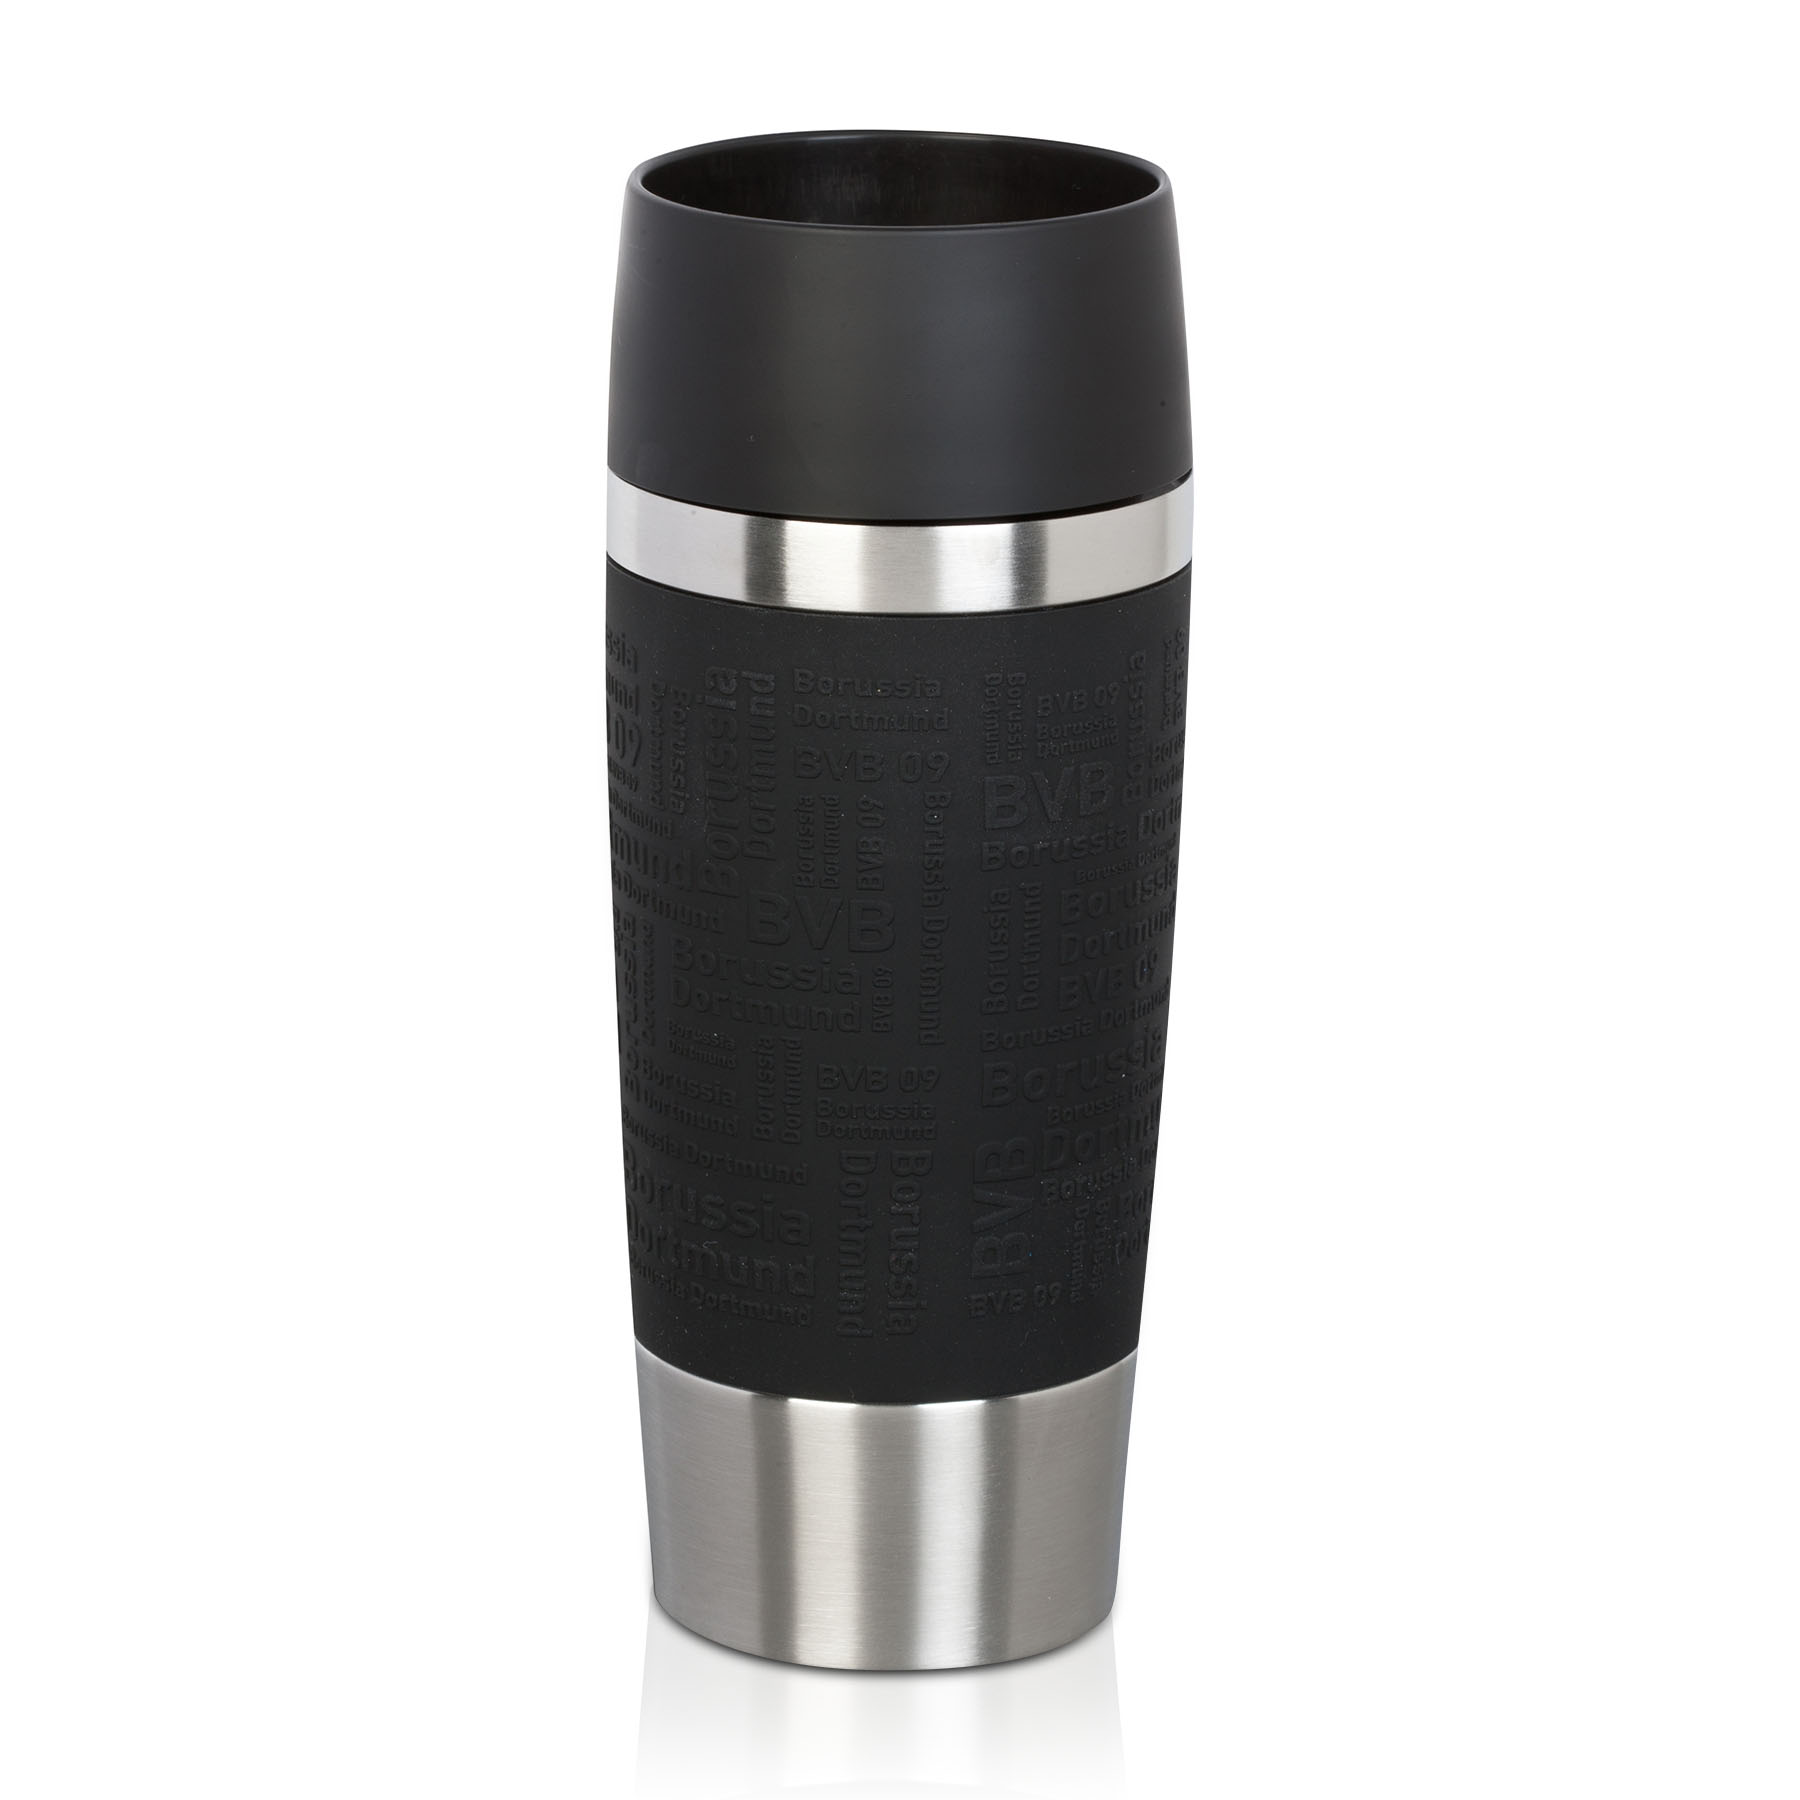 Image of BVB Coffee to go Cup - Large, Black